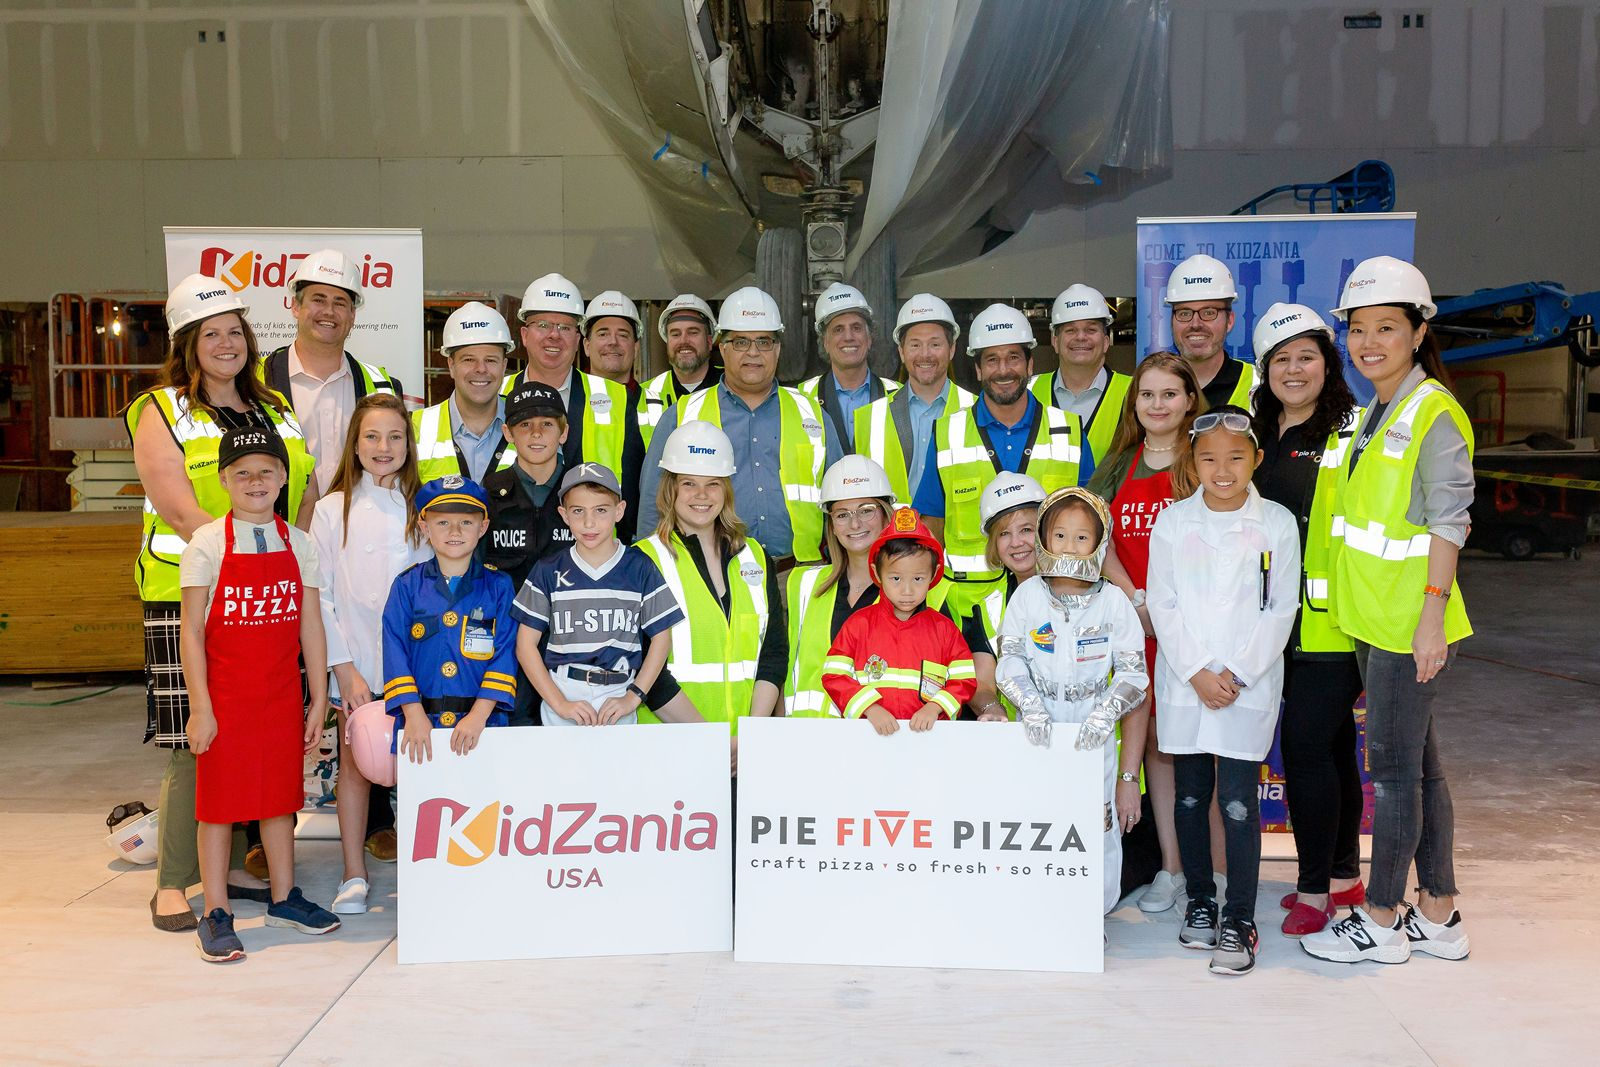 Pie Five Partners with Leading Global Interactive Children's City, KidZania